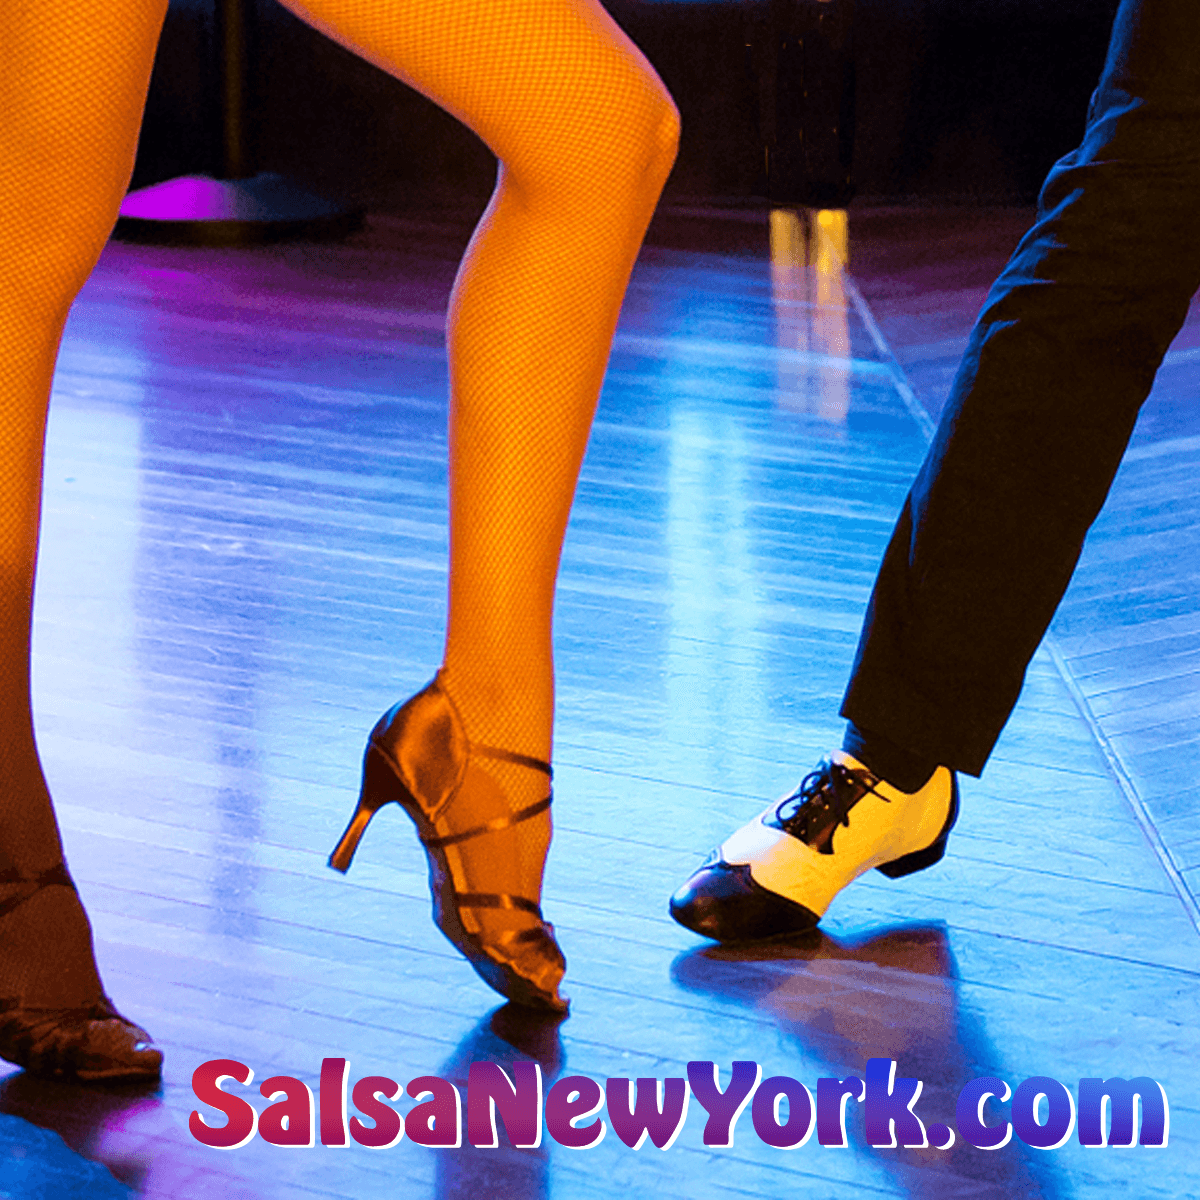 Salsa New York Calendar The Best Salsa Events In Ny